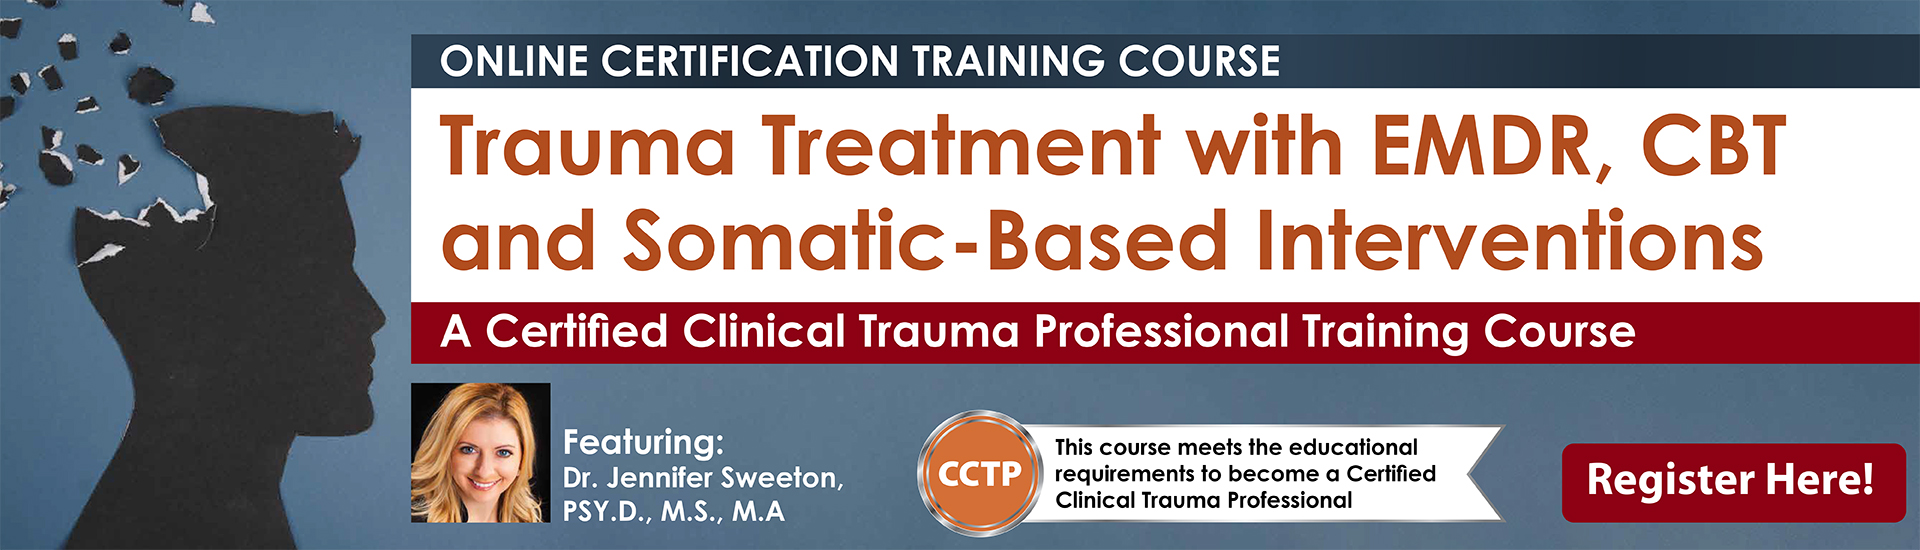 Trauma Treatment with EMDR, CBT and Somatic-Based Interventions: A Certified Clinical Trauma Professional Training Course